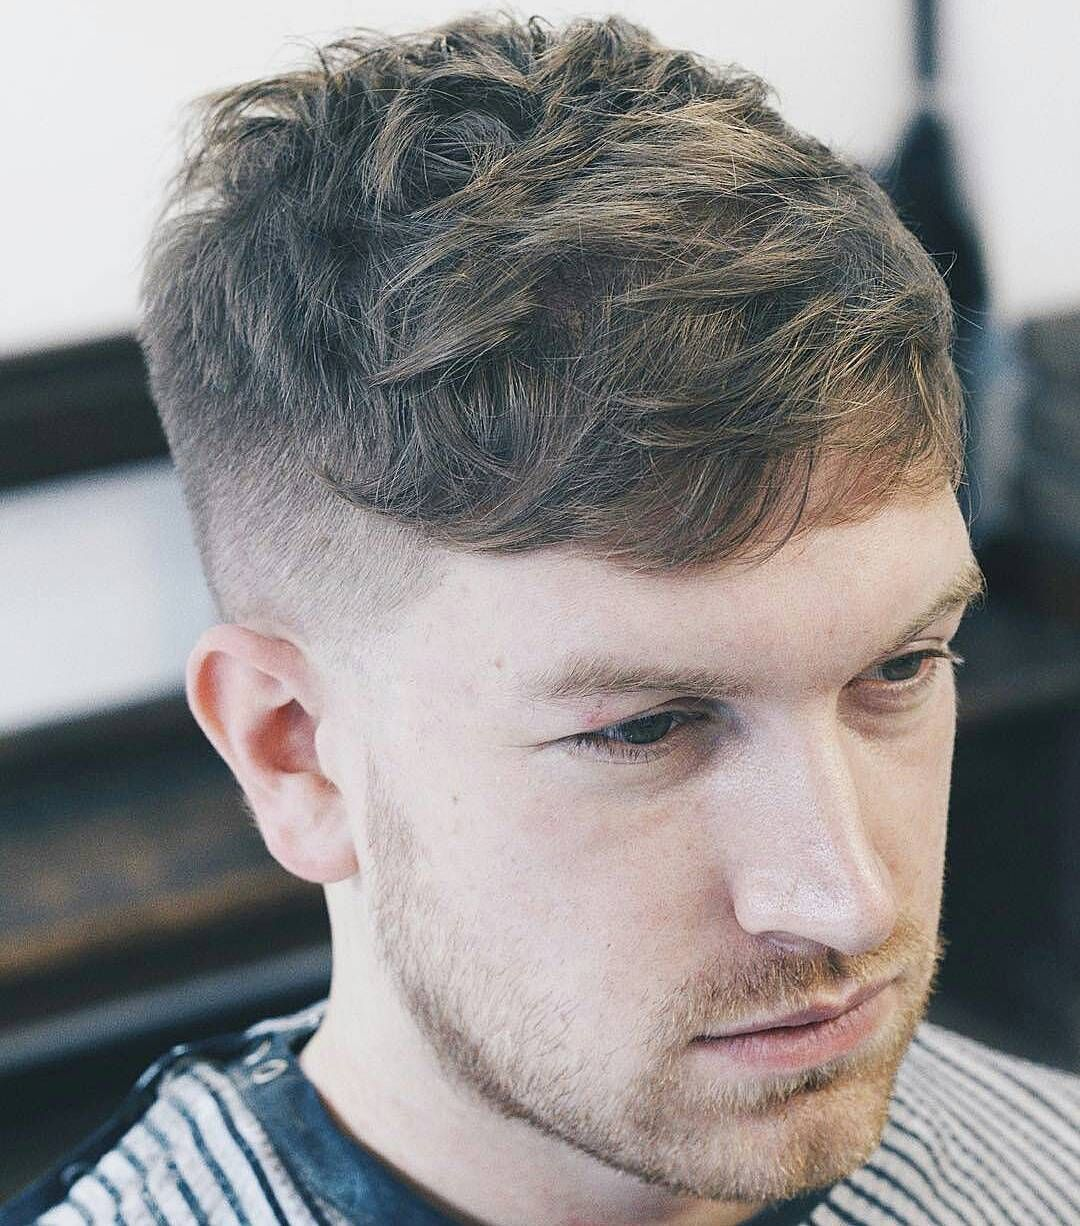 Awesome 45 trendy short haircuts for men be yourself check more at awesome 45 trendy short haircuts for men be yourself check more at httpmachohairstylestrendy short haircuts for men solutioingenieria